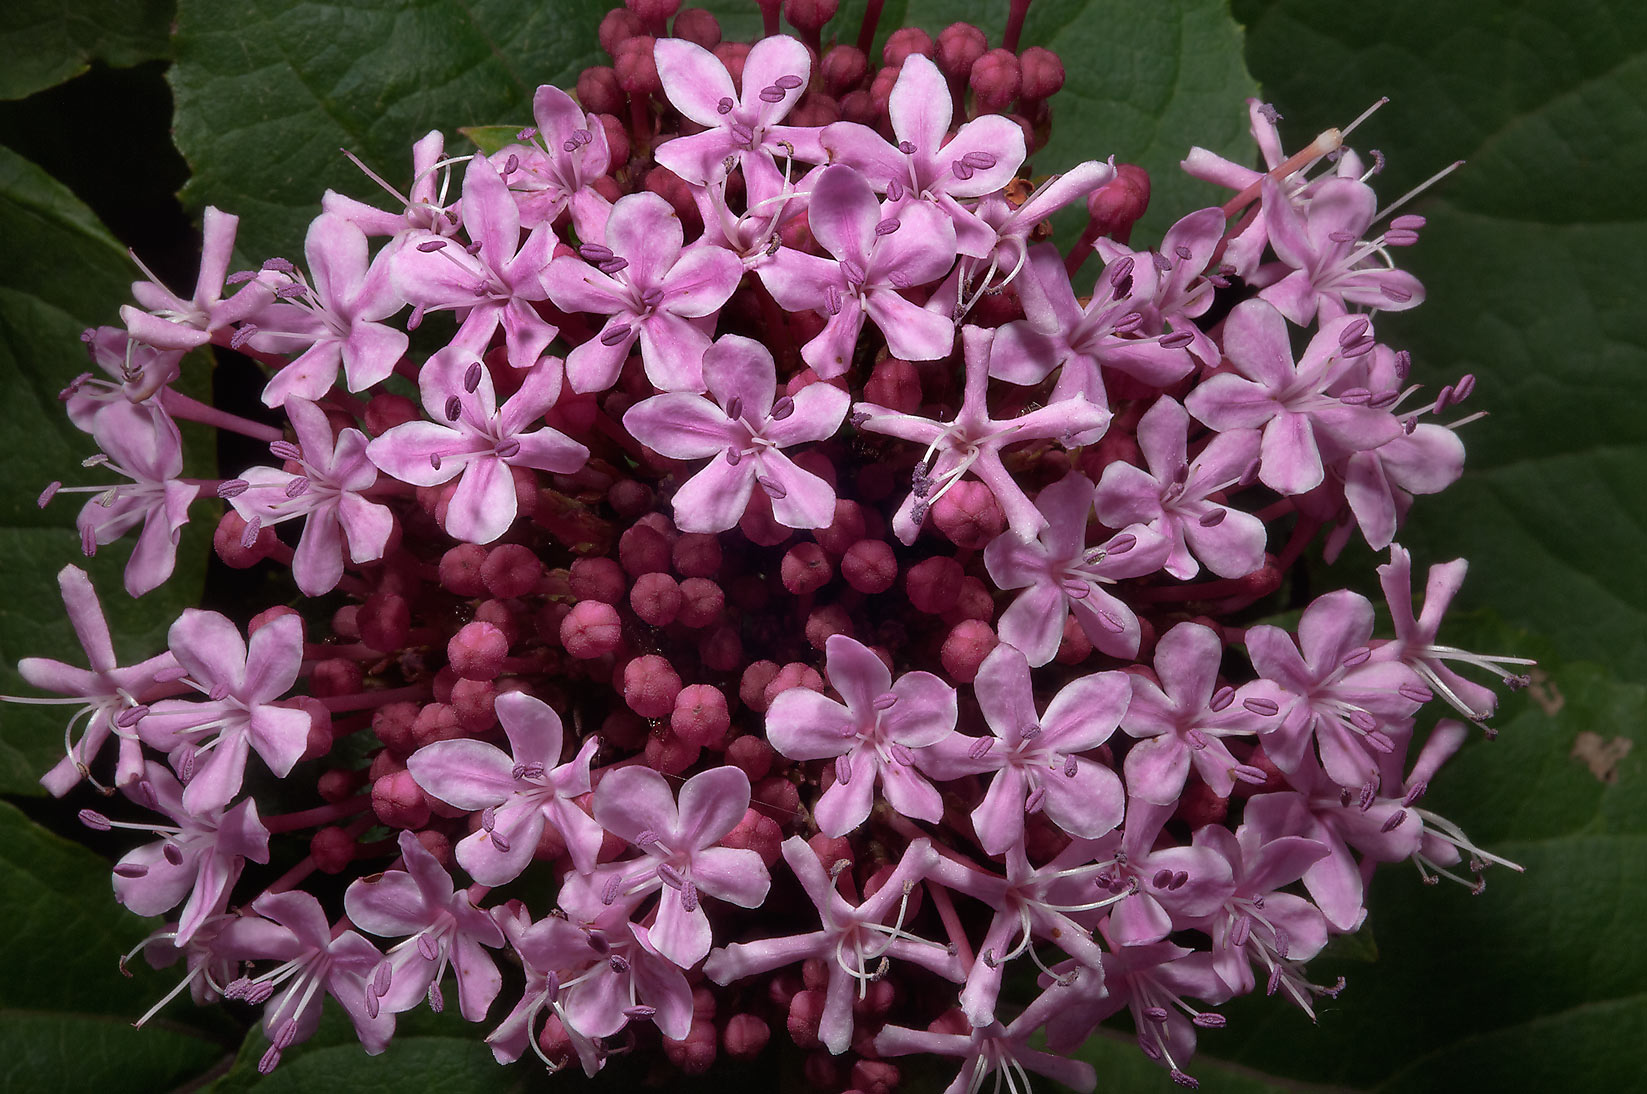 Cashmere Bouquet (Clerodendron bungei) in Antique Rose Emporium. Independence, Texas